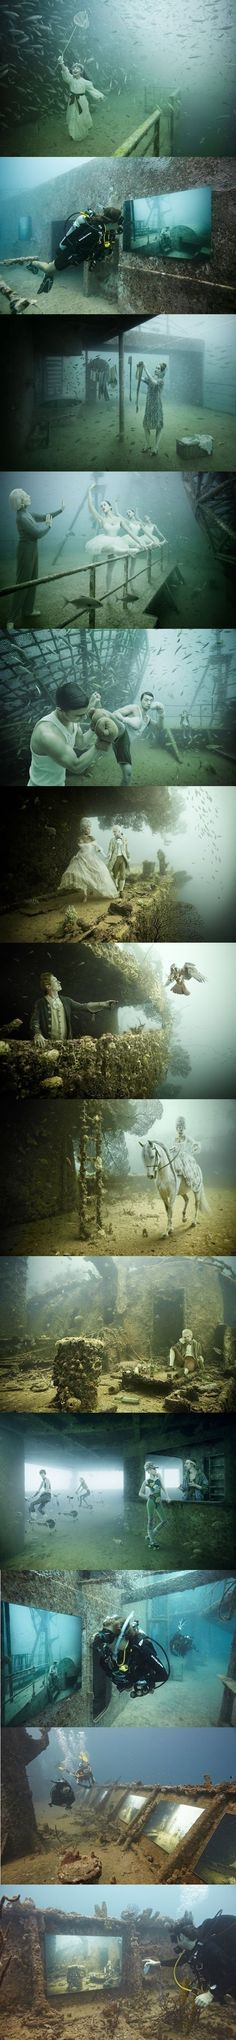 Underwater Gallery! Creepy but soooo cool